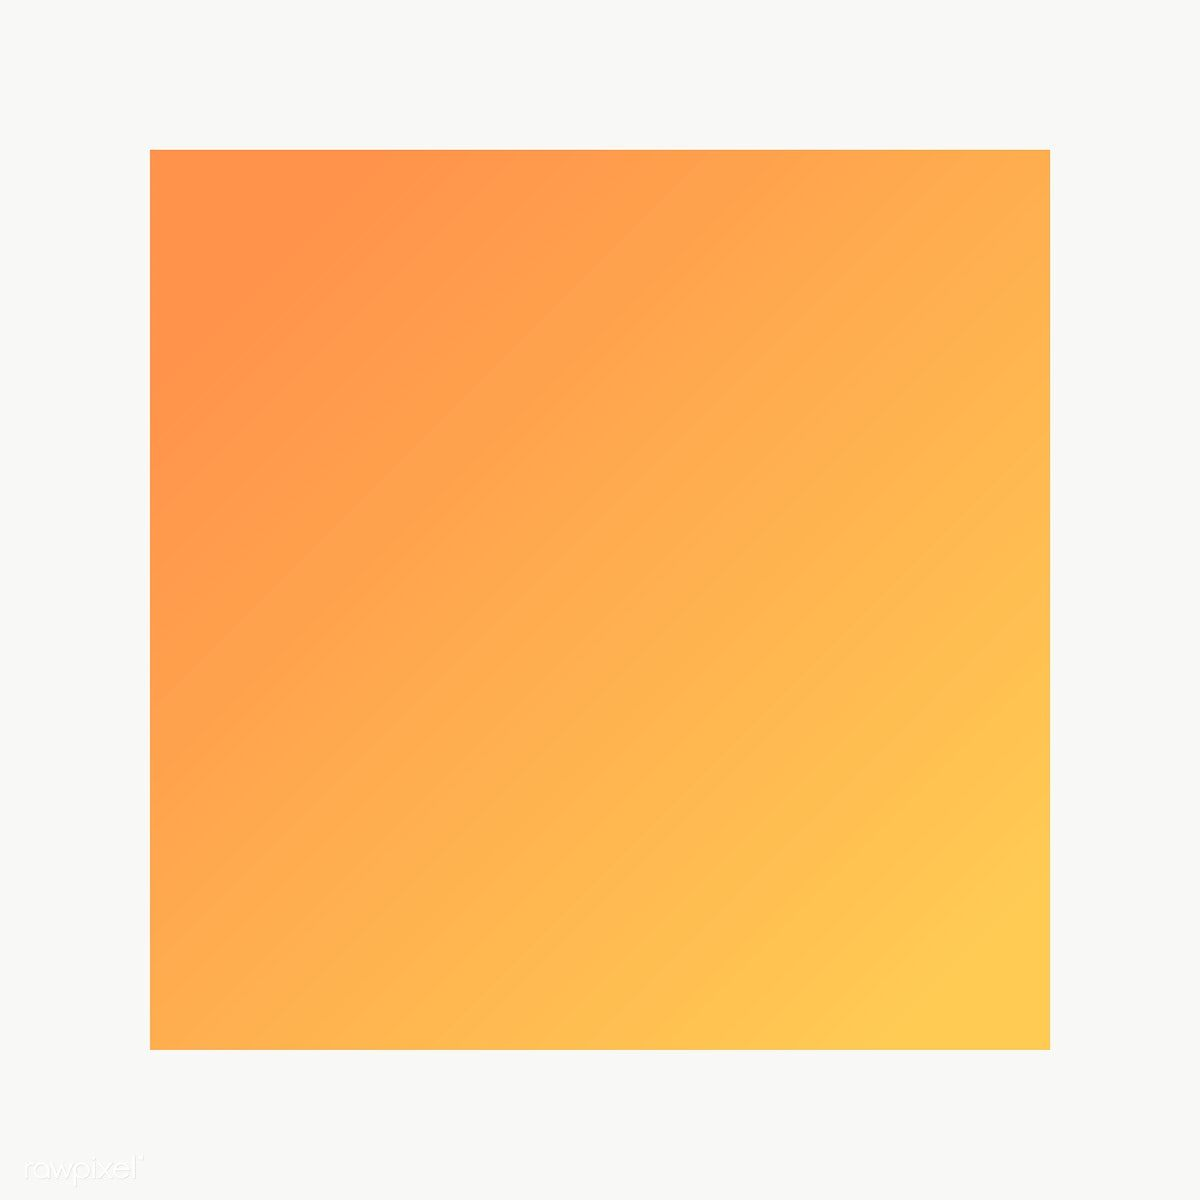 Yellow Gradient Square Geometric Shape Transparent Png Free Image By Rawpixel Com Ningzk V Geometric Shapes Printable Designs Geometric